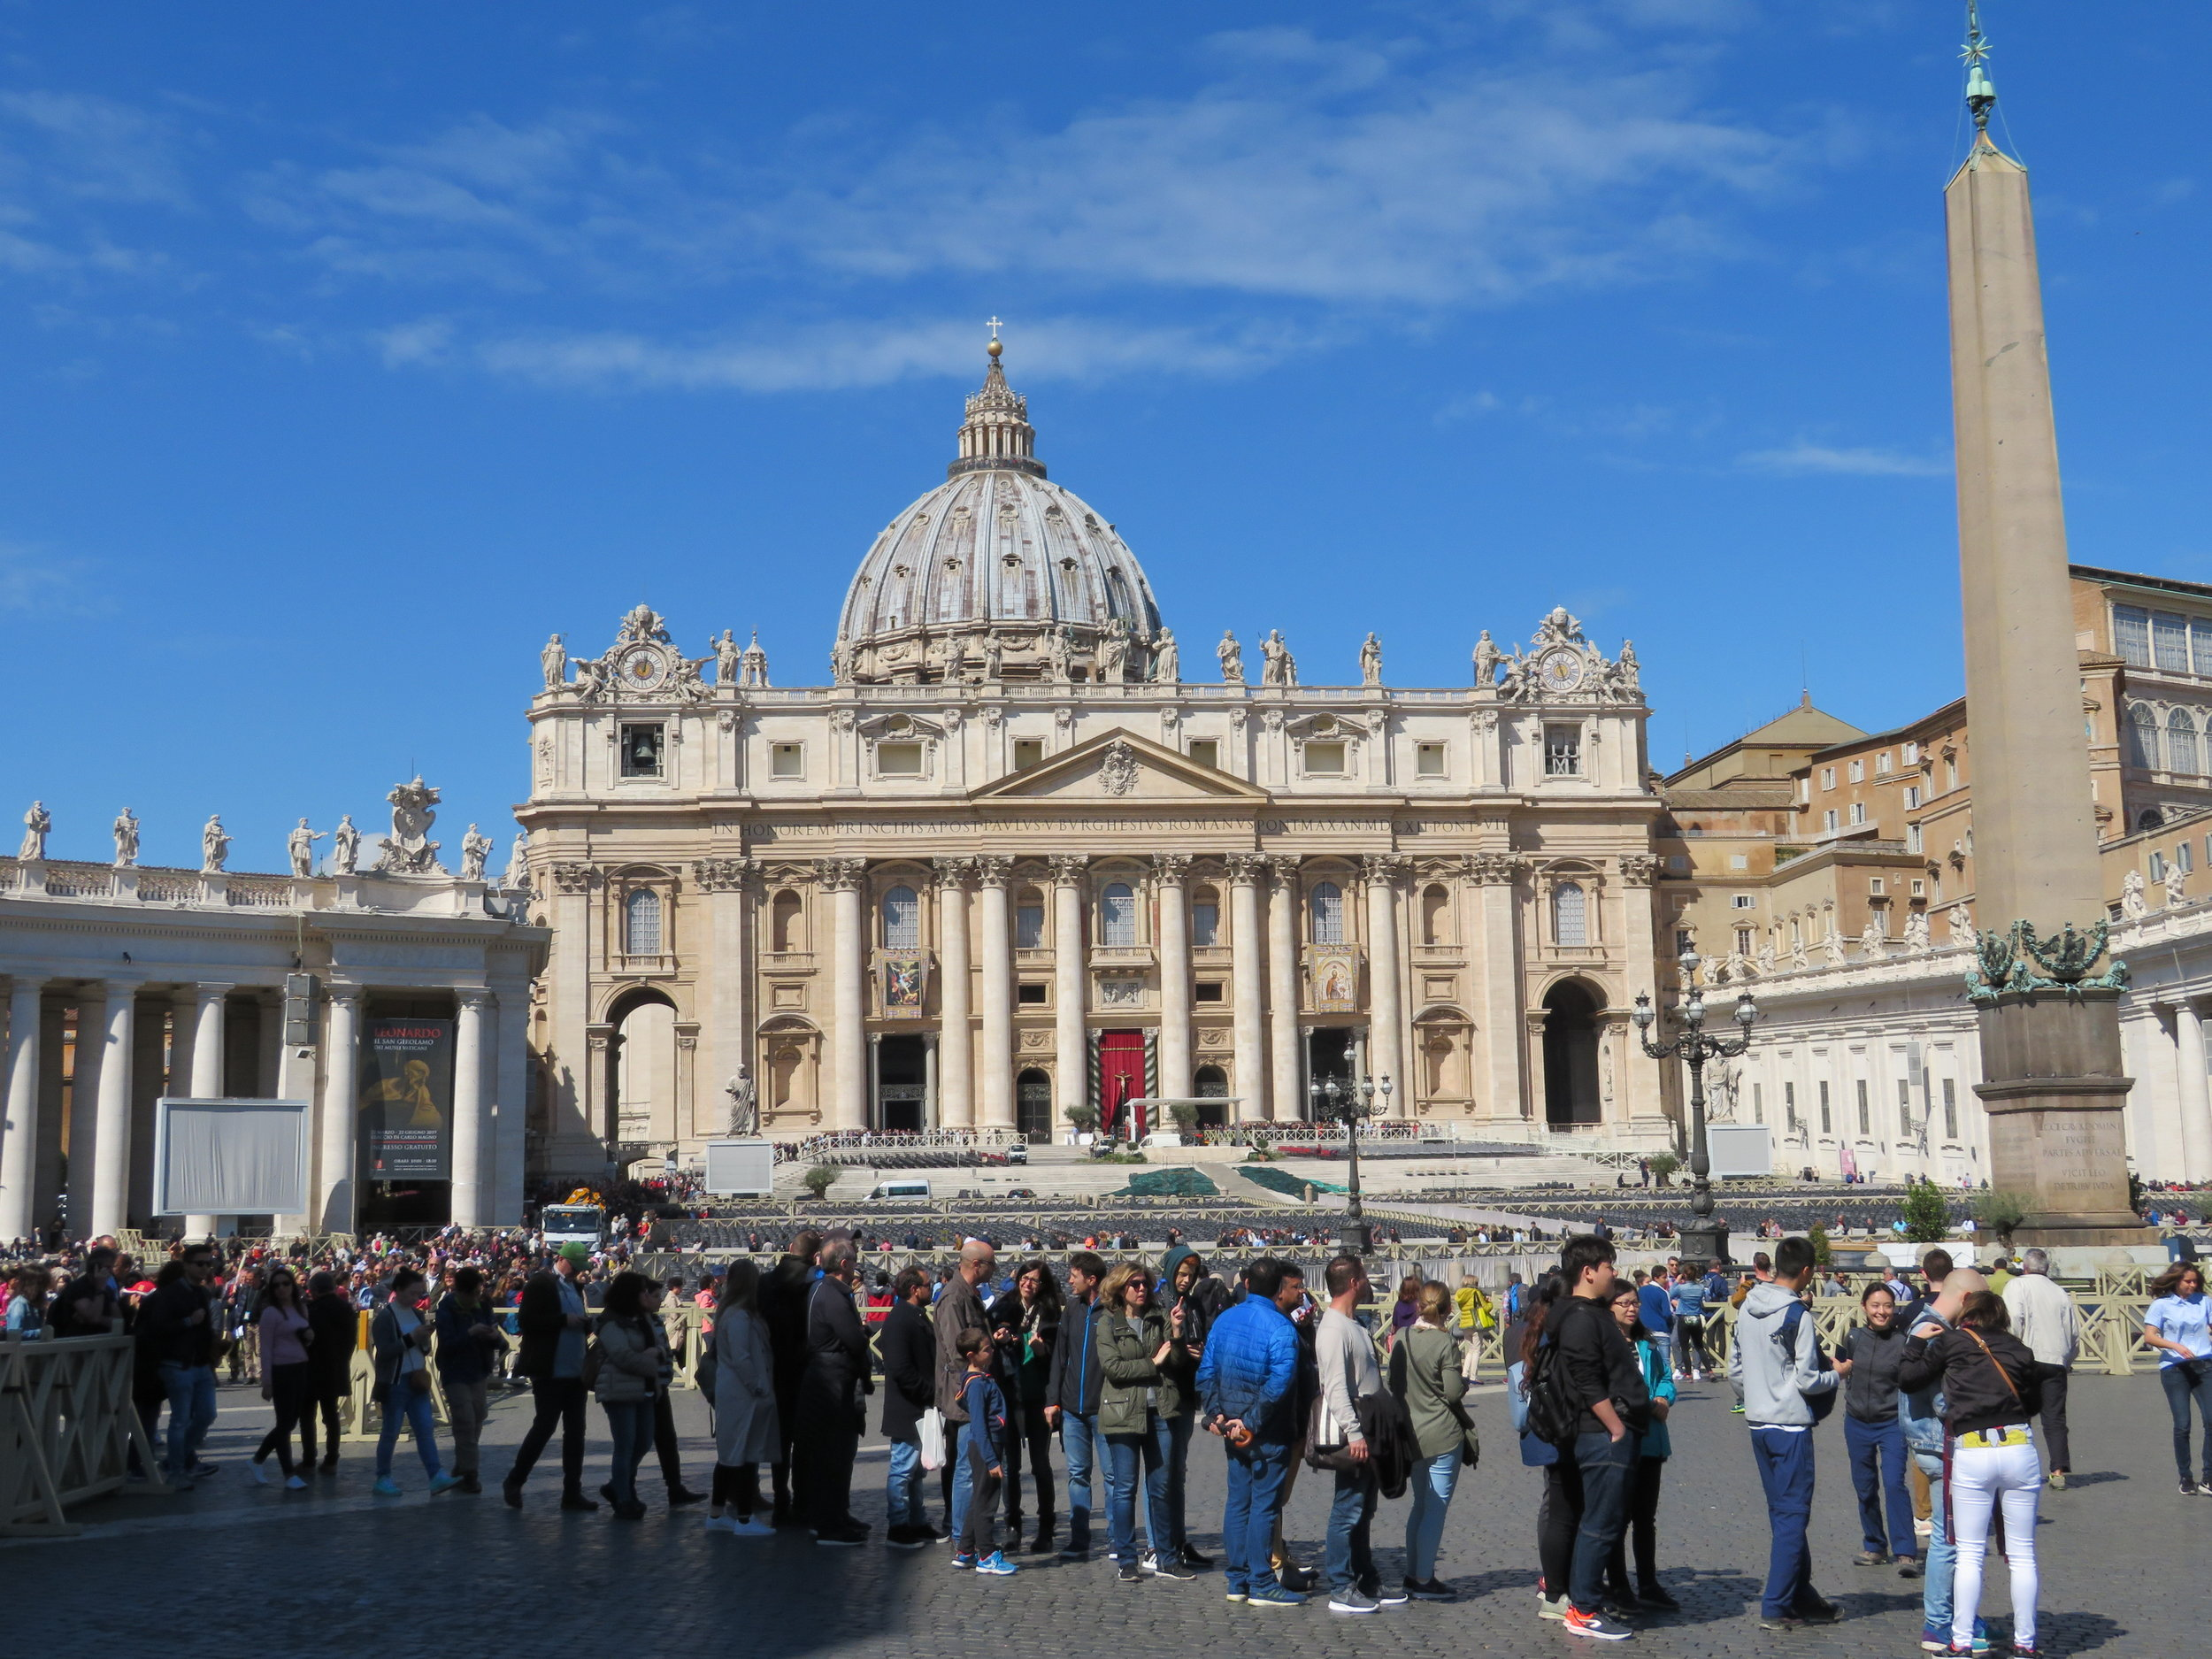 St. Peter's Basilica. There are no skyscrapers in Rome because there is a law that no building may be higher than St. Peter's Basilica.